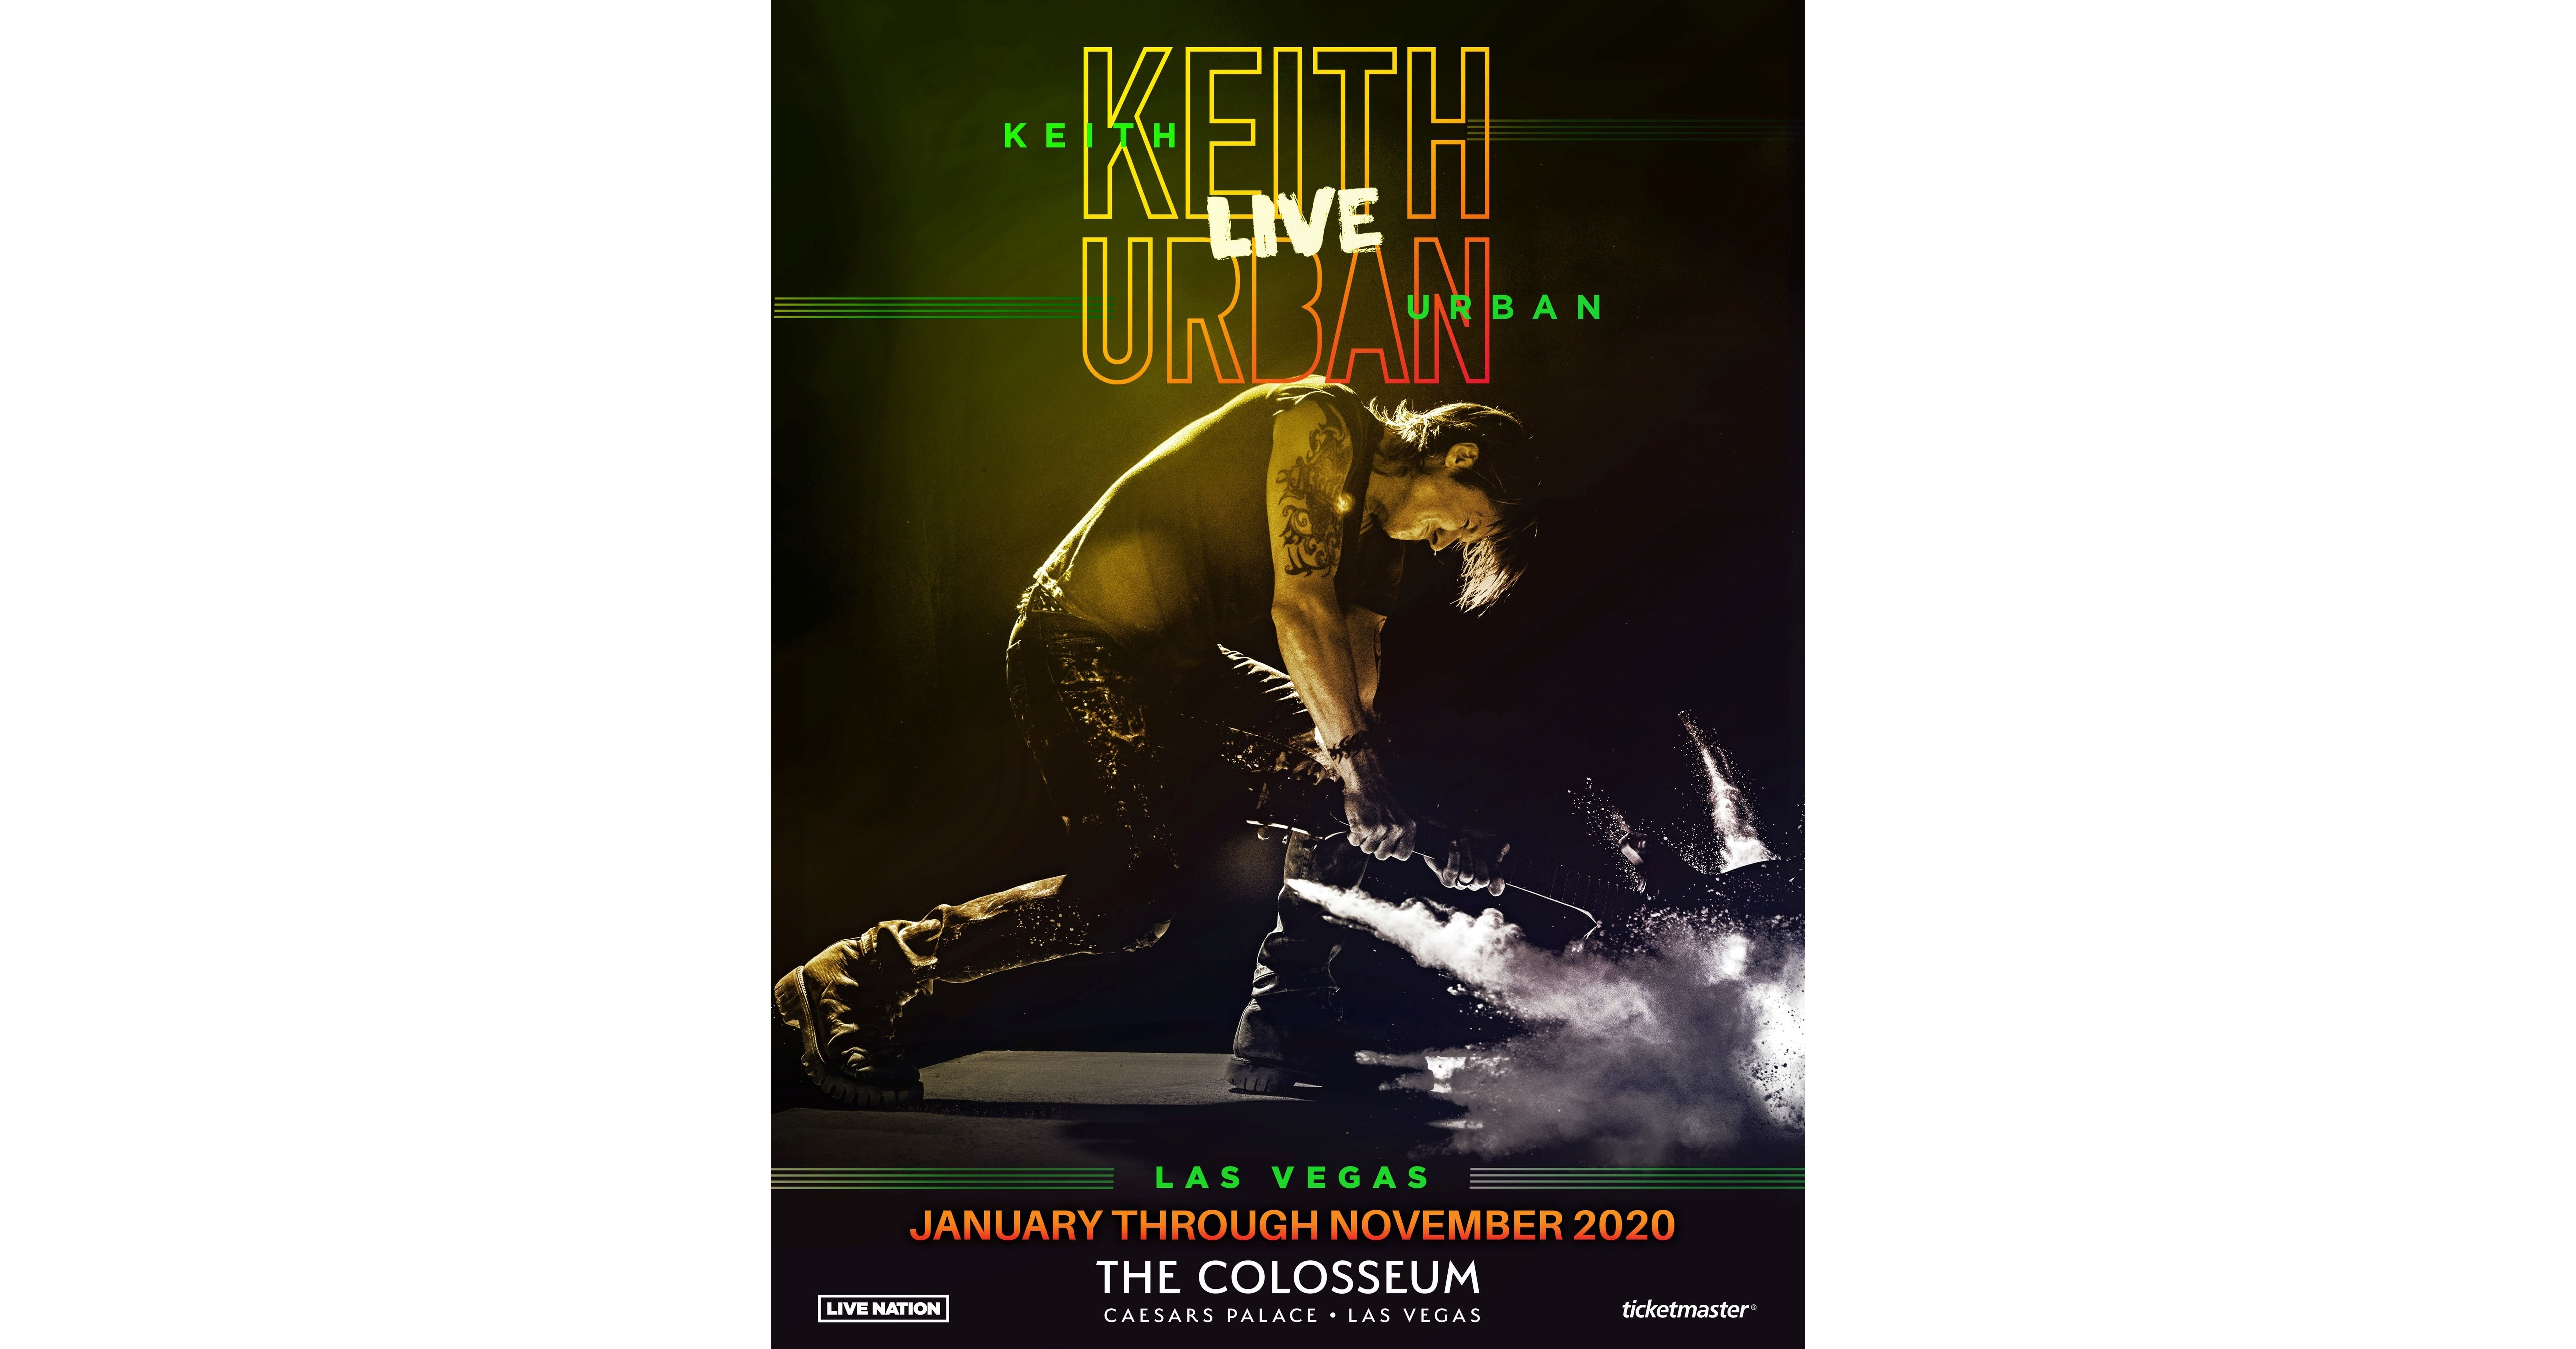 Sci Fi Las Vegas Events 2020.Keith Urban Live Las Vegas To Play 12 Concerts At The